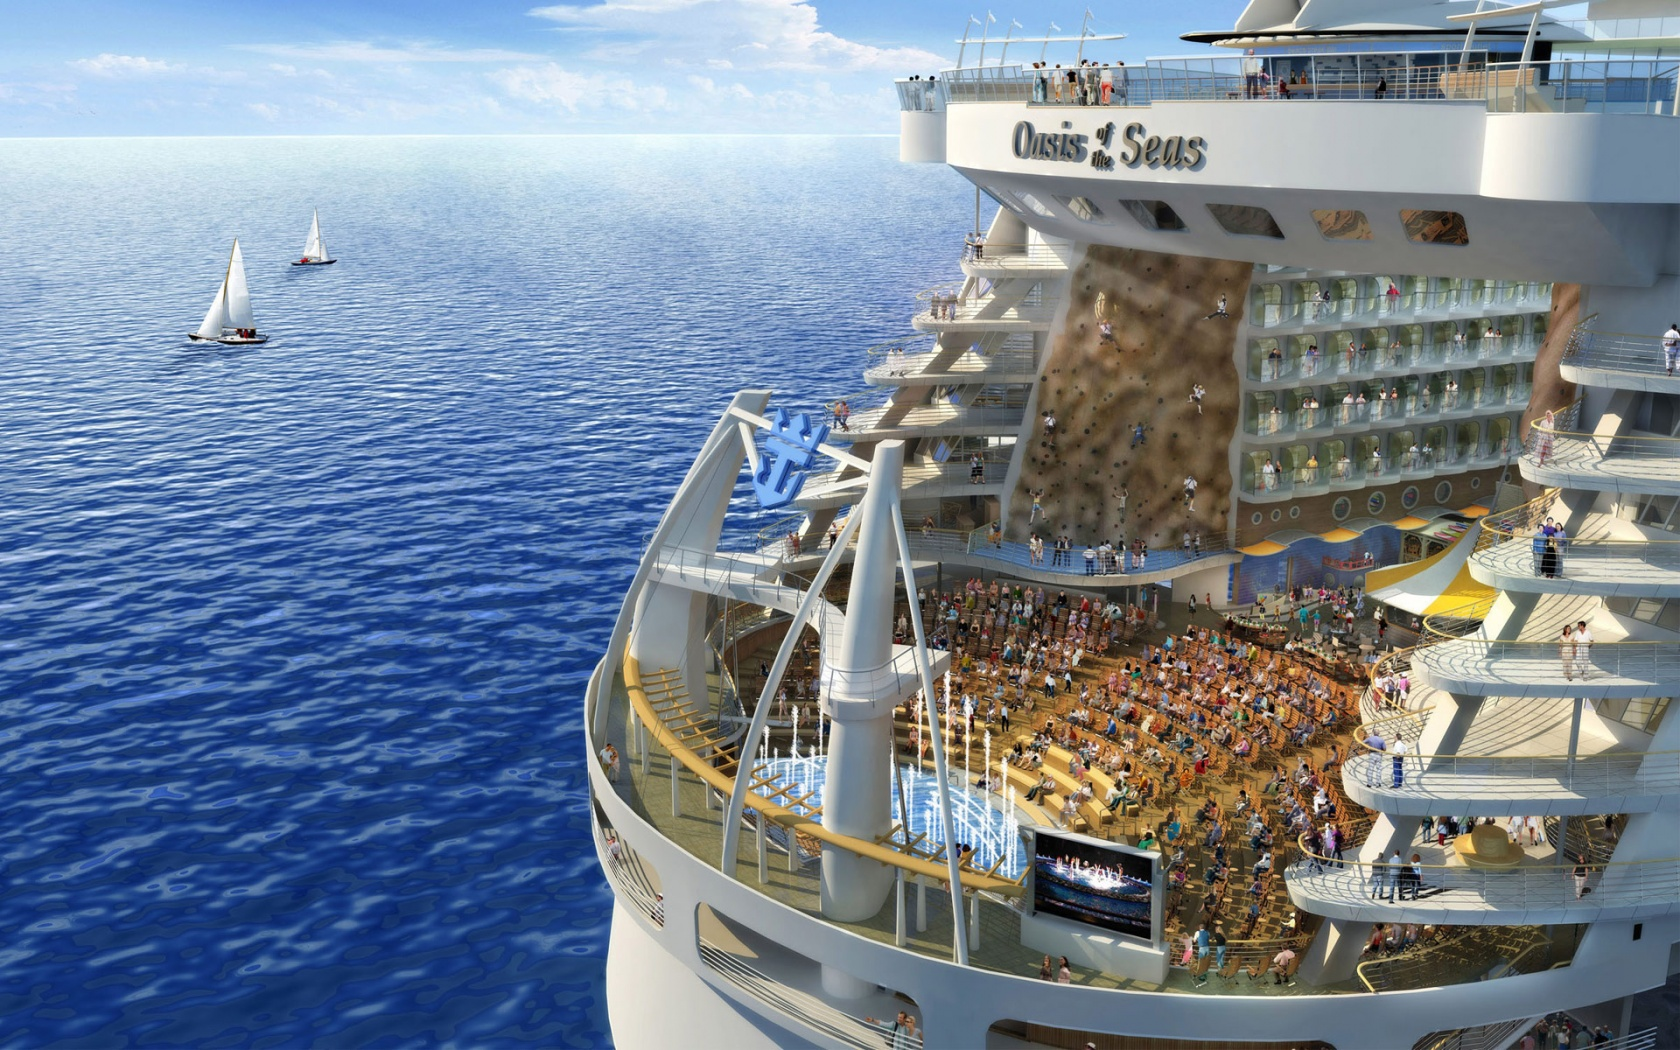 Oasis of the seas Royal Caribbean Wallpapers HD Wallpapers 1680x1050